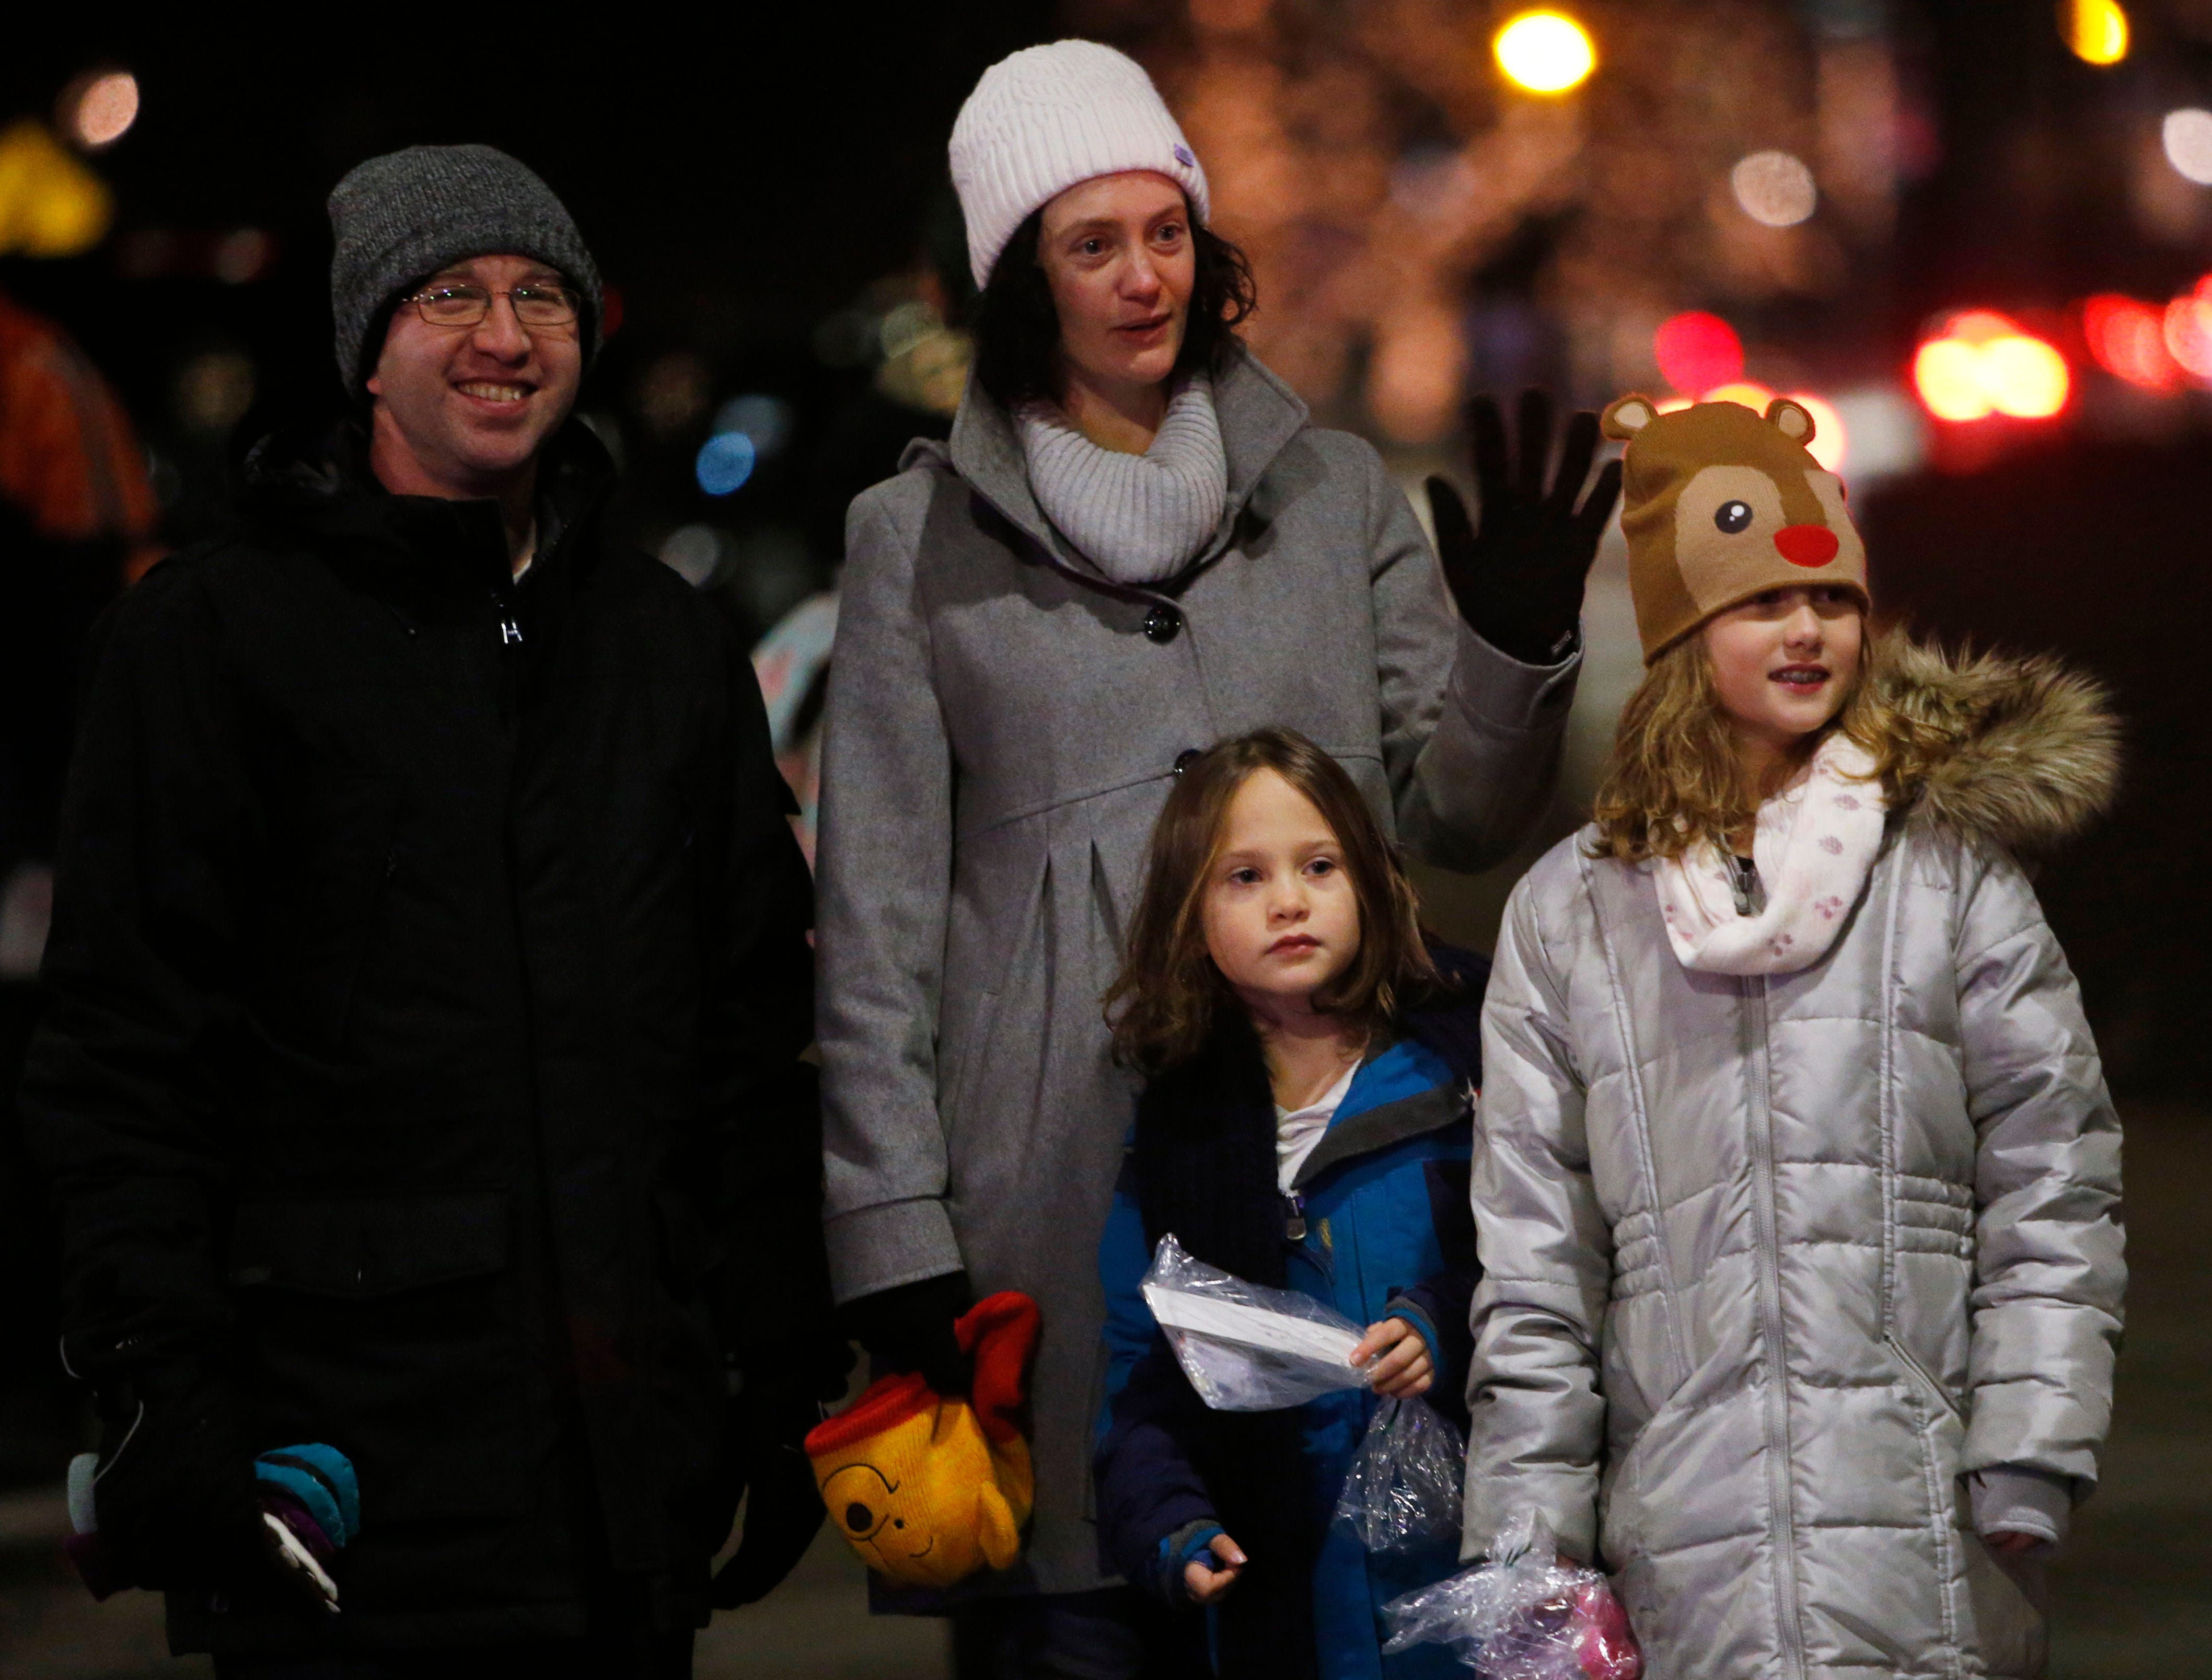 From left, Ron, Stacey, Eliza and Sophie Isaacson enjoying the Celebration of Lights Parade in the City of Poughkeepsie on November 30, 2018.